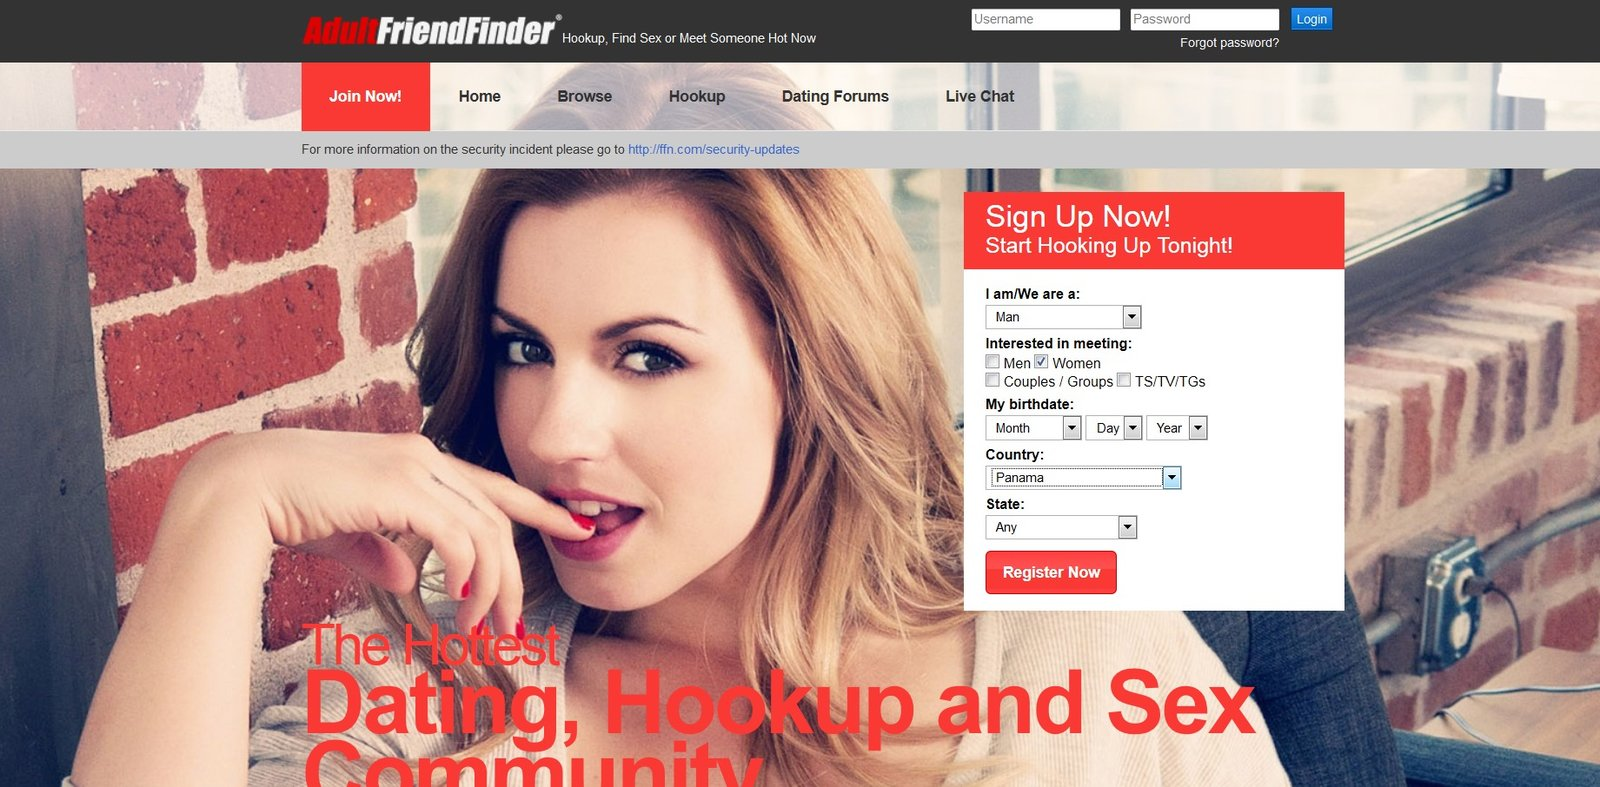 Customer reviews online dating sites 8